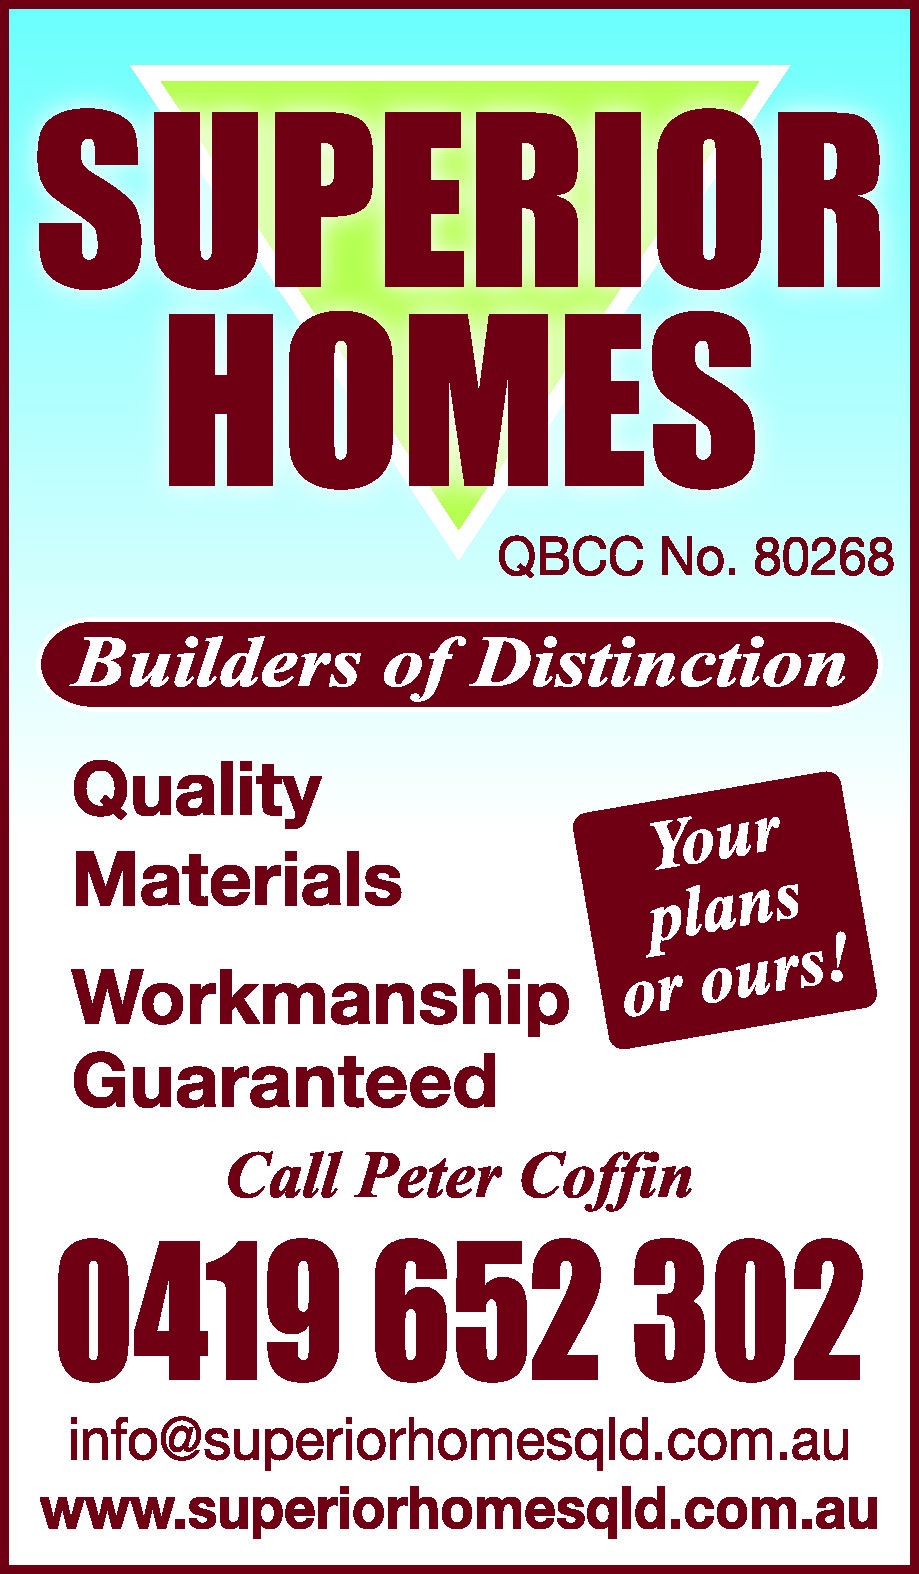 Superior Homes - Cladding